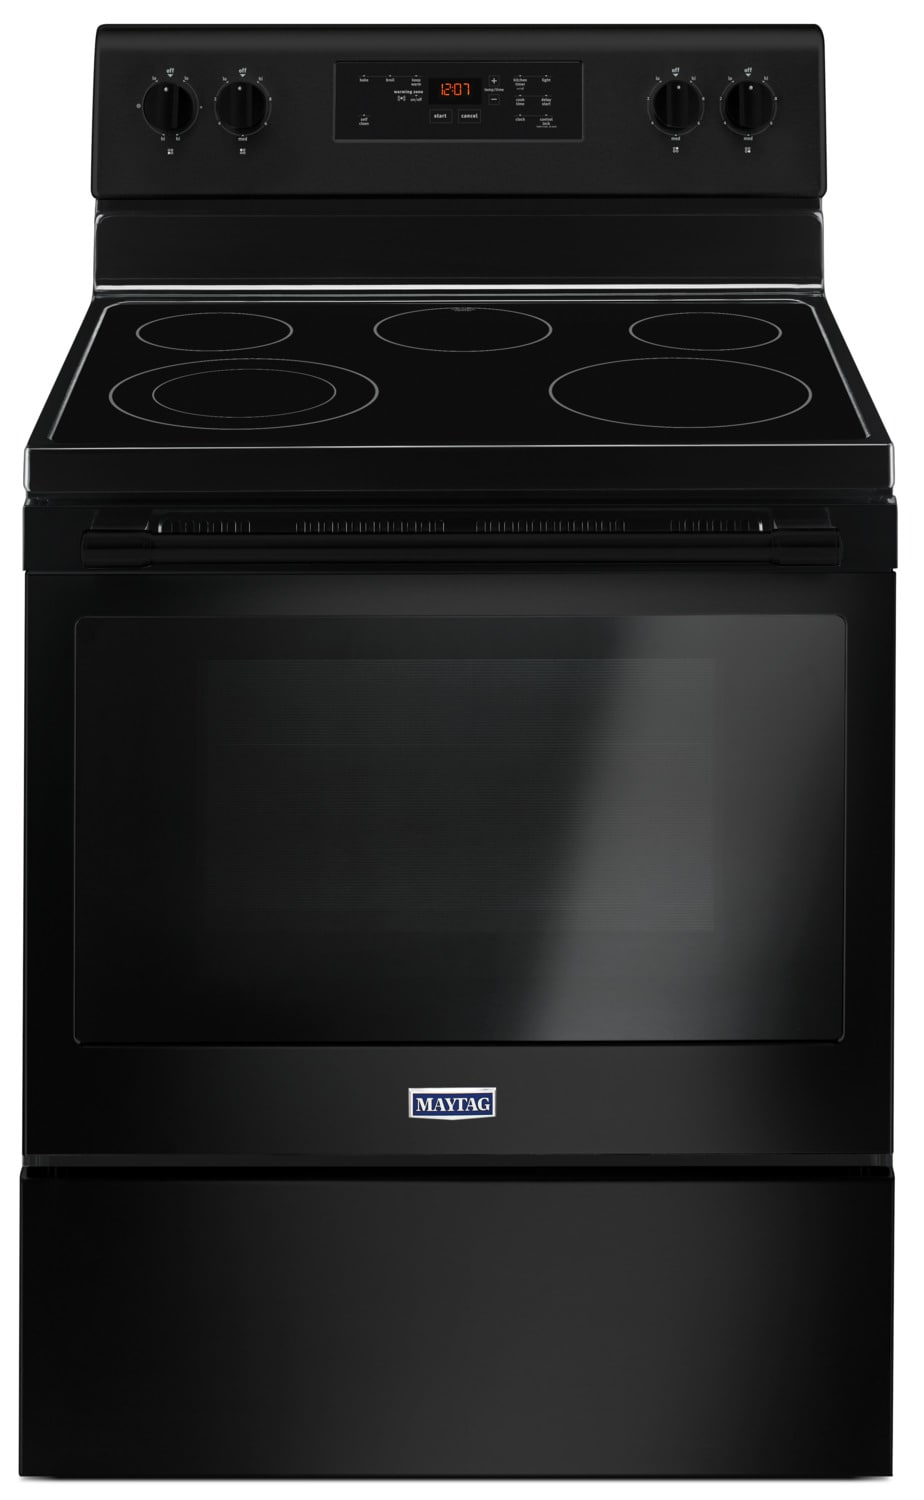 Maytag Black Freestanding Electric Range - (5.3 Cu. Ft.) - YMER6600FB